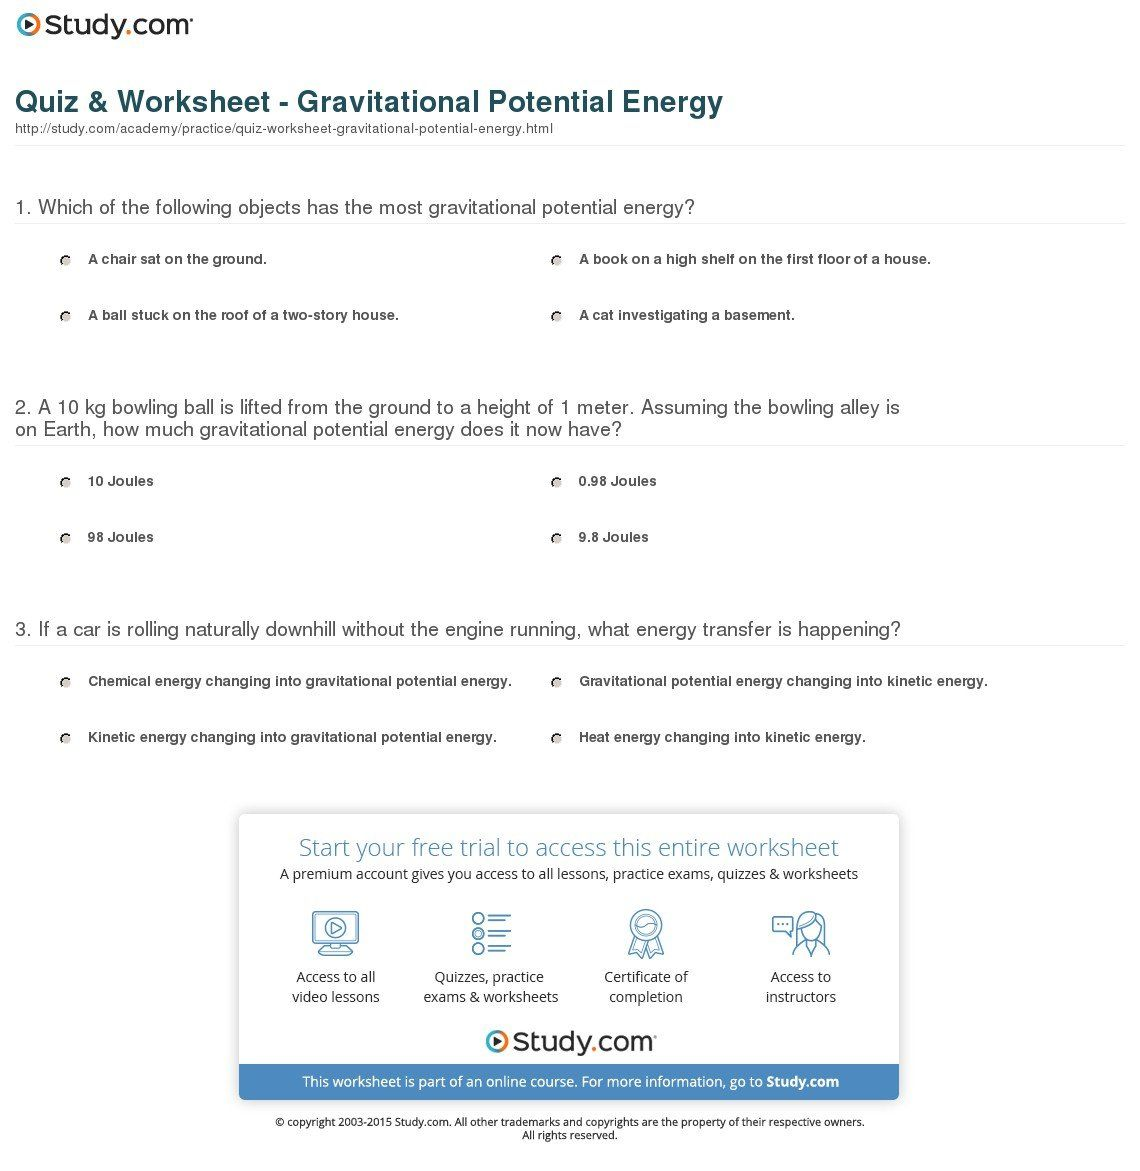 Gravitational Potential Energy Worksheet With Answers Gravitational Potential Energy Gravitational Potential Potential Energy